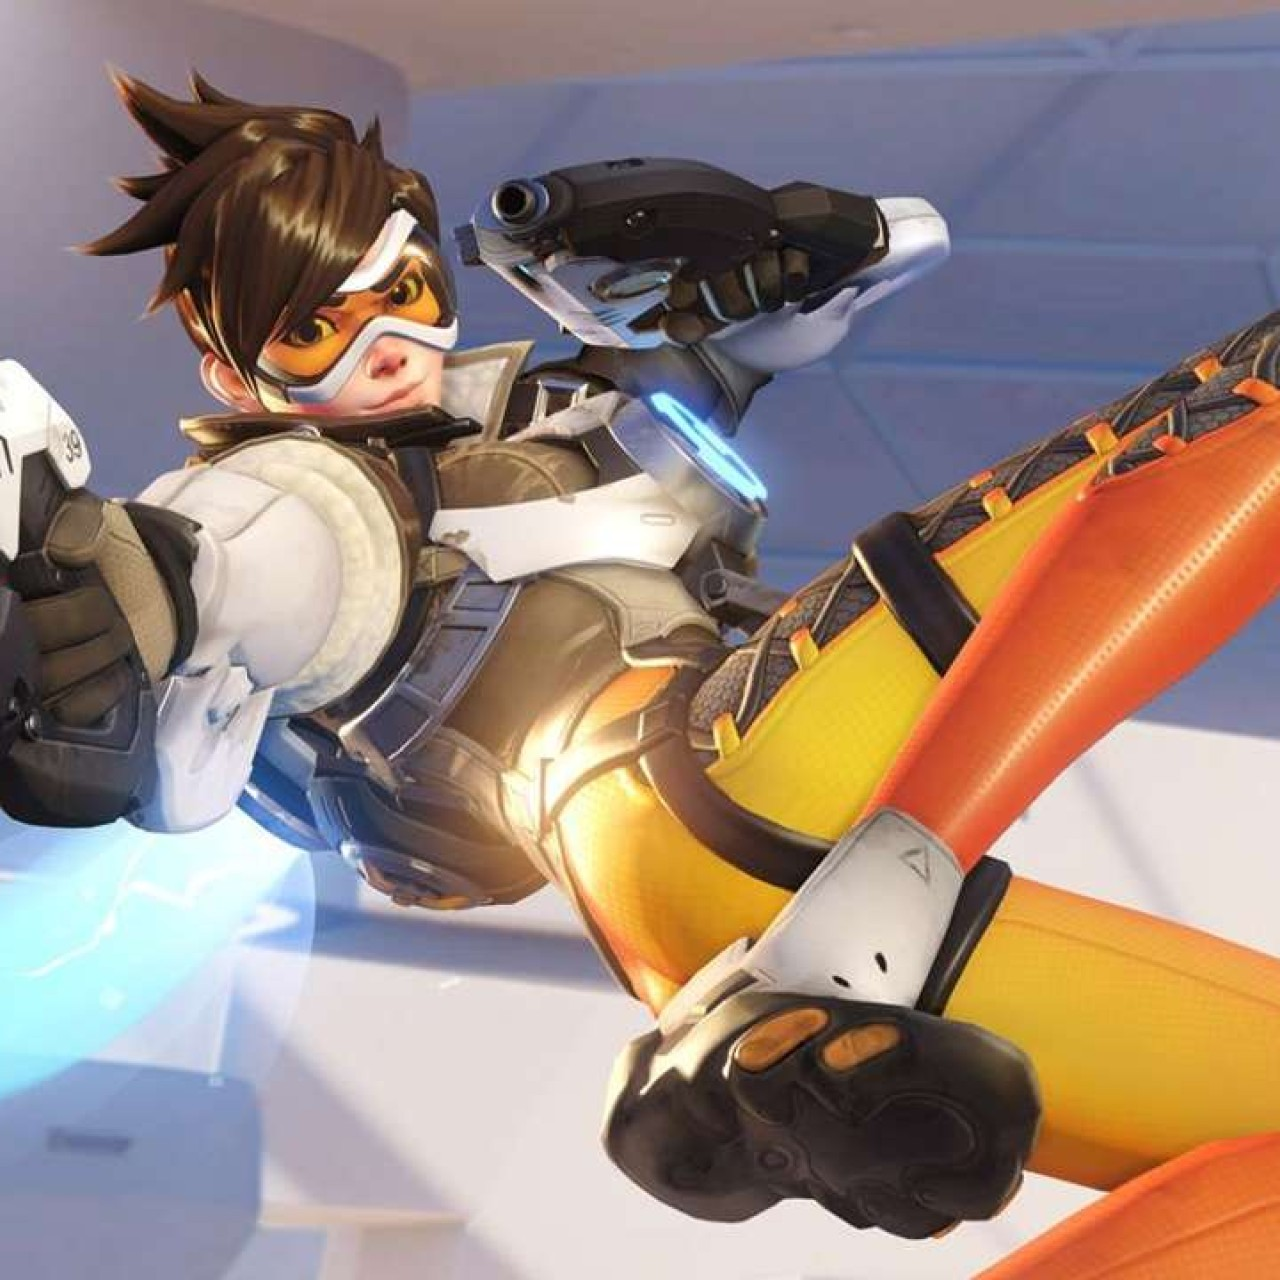 Console yourself with nine of the best video games for